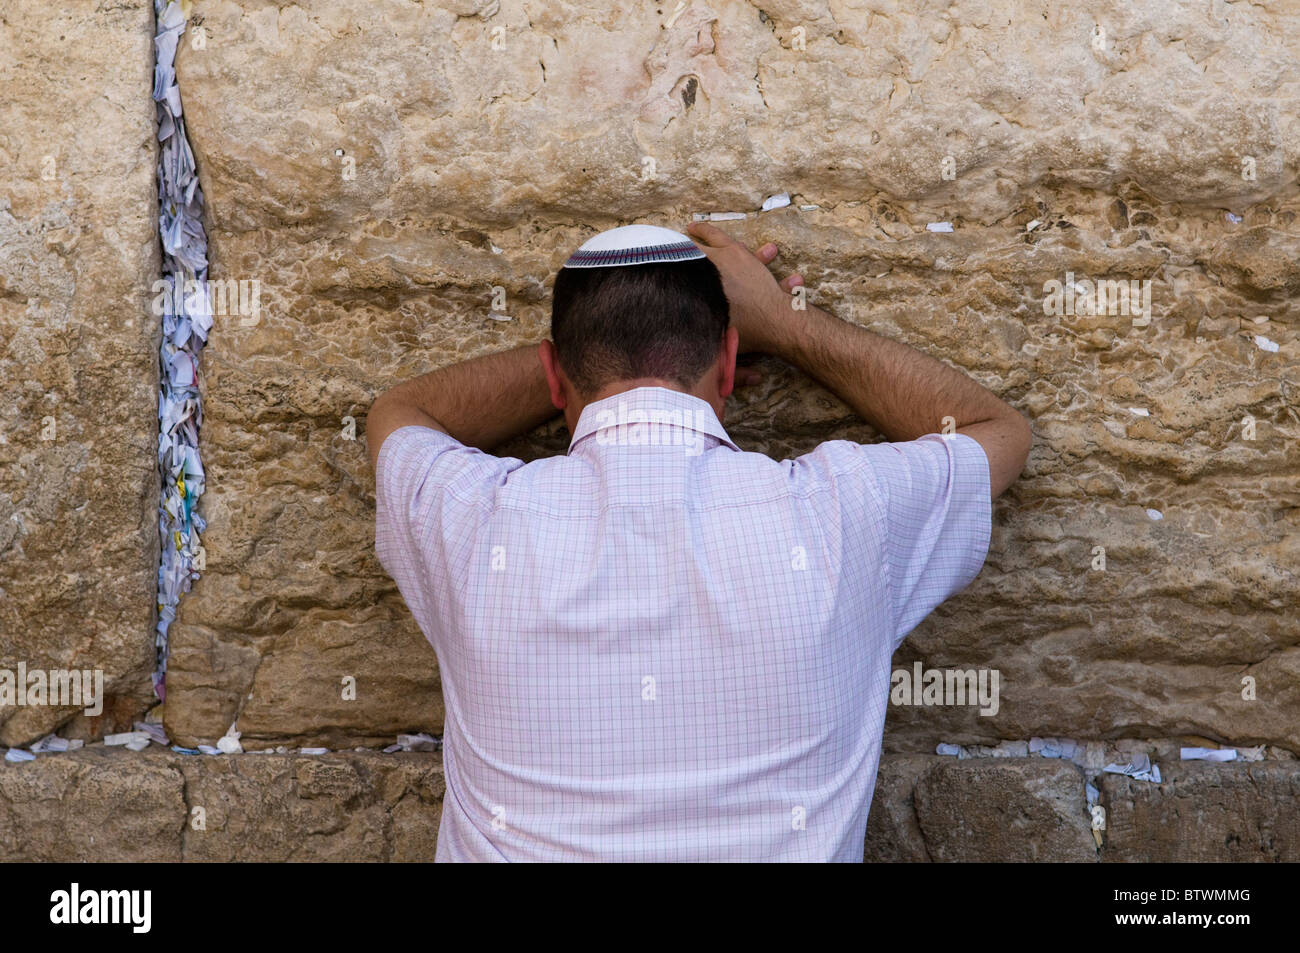 Jewish man in prayer at the Western Wall in Jerusalem - Stock Image